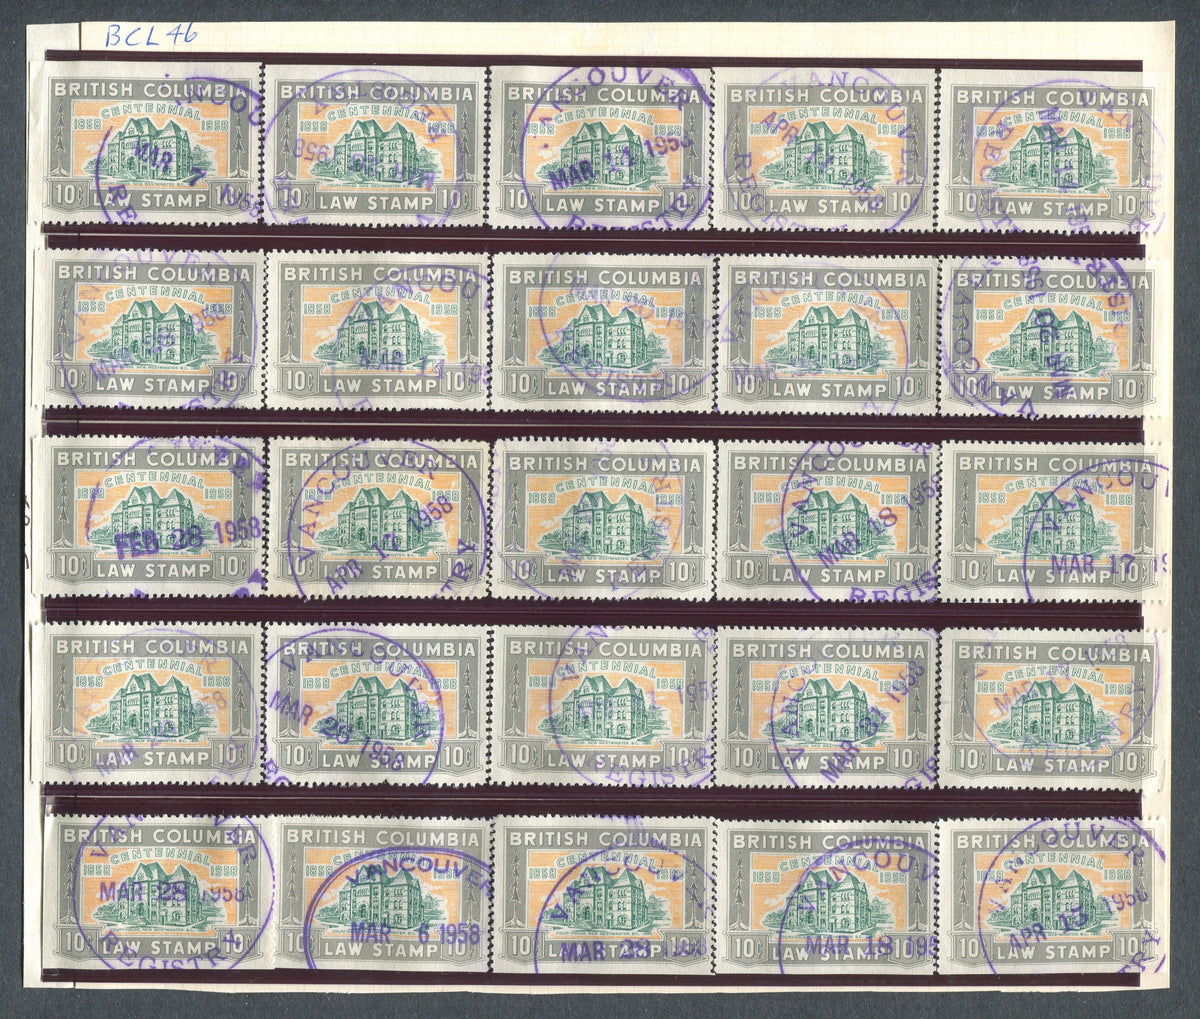 0046BC1709 - BCL46 - Used Reconstructed Sheet